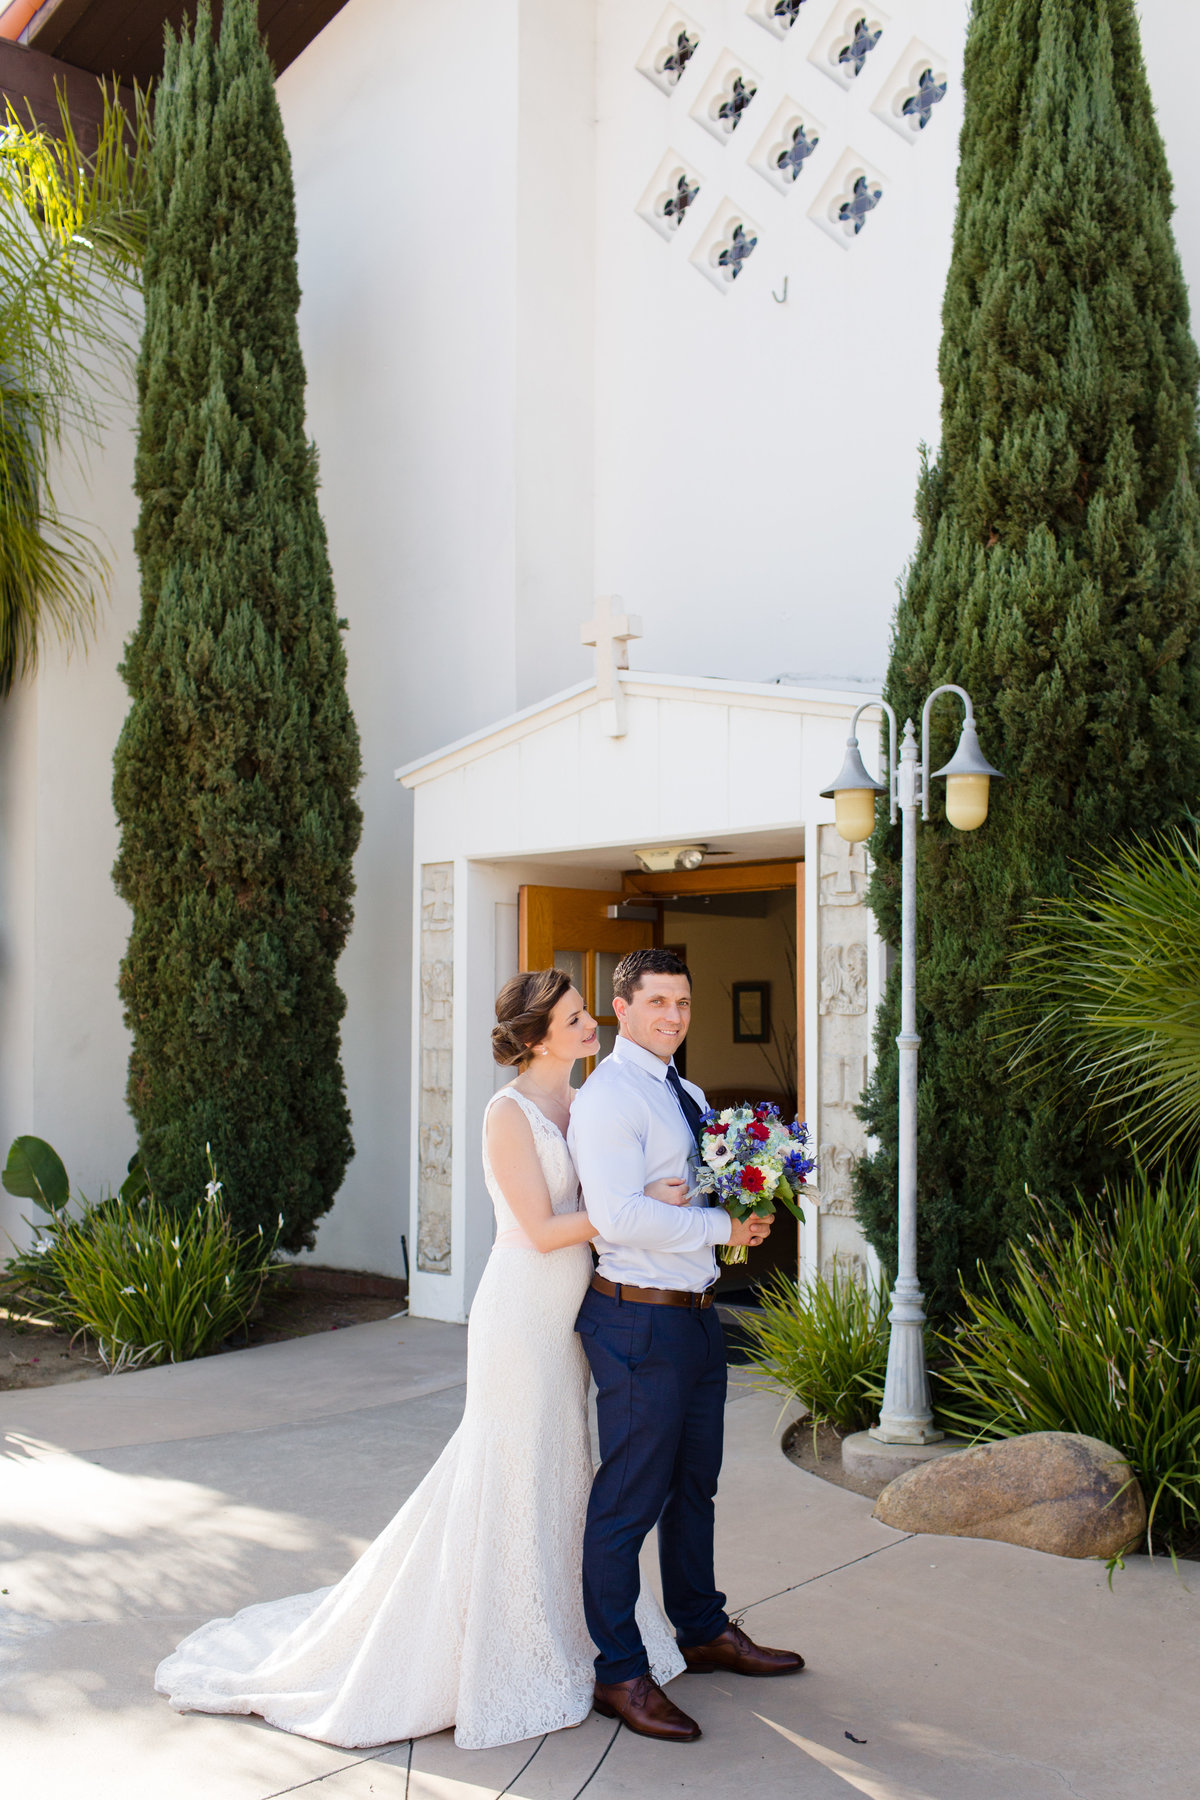 Katherine_beth_photography_San_diego_wedding_photographer_san_diego_wedding_Christ_Luthern_pacific_Beach_Wedding_002